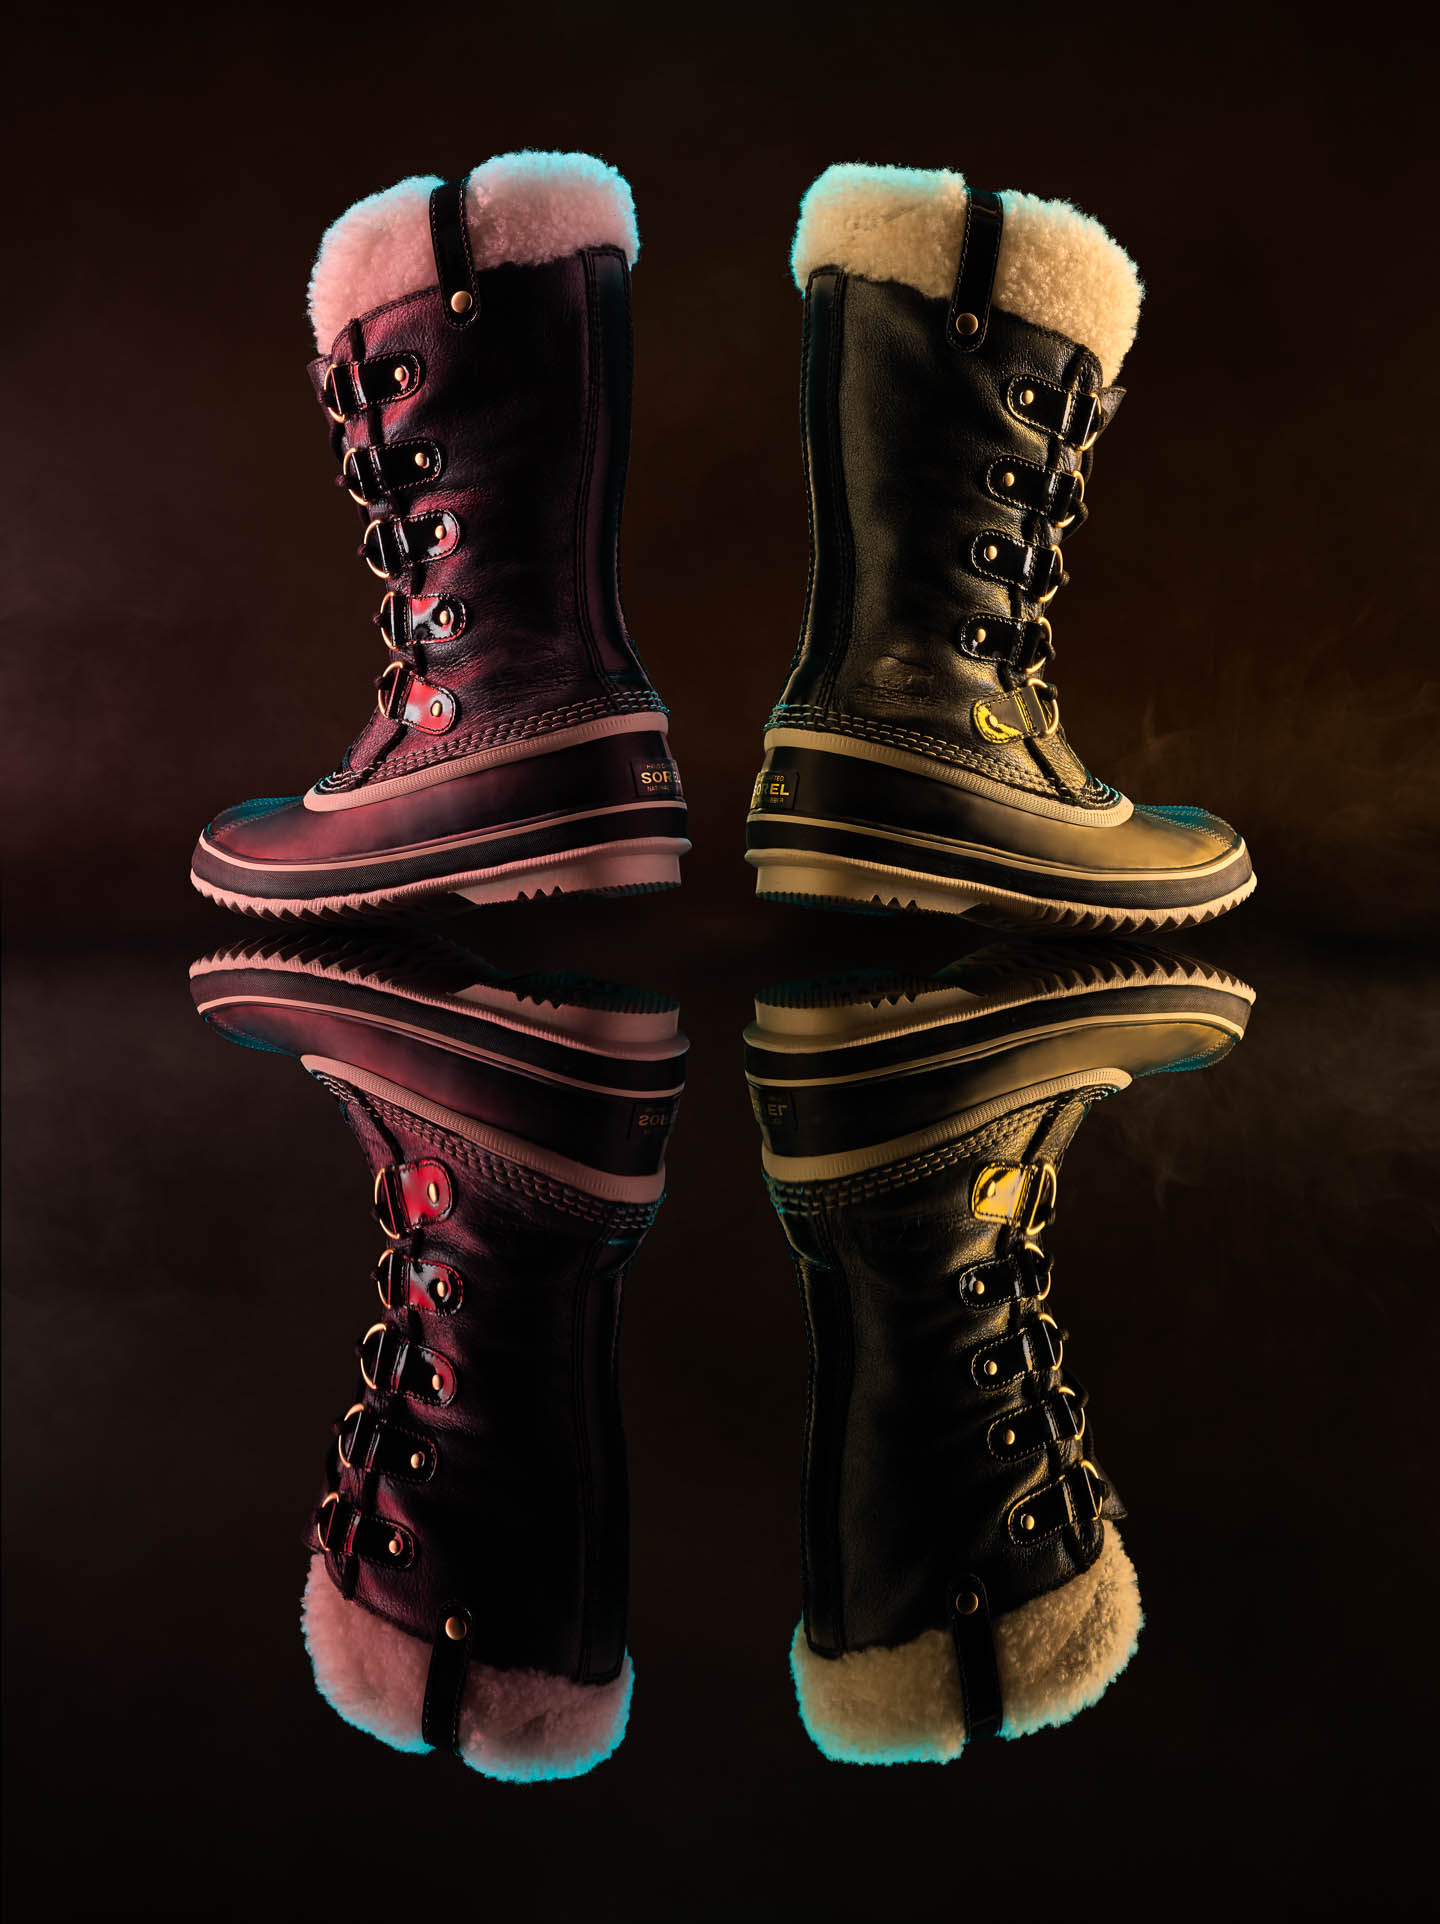 Sorel fashion footwear